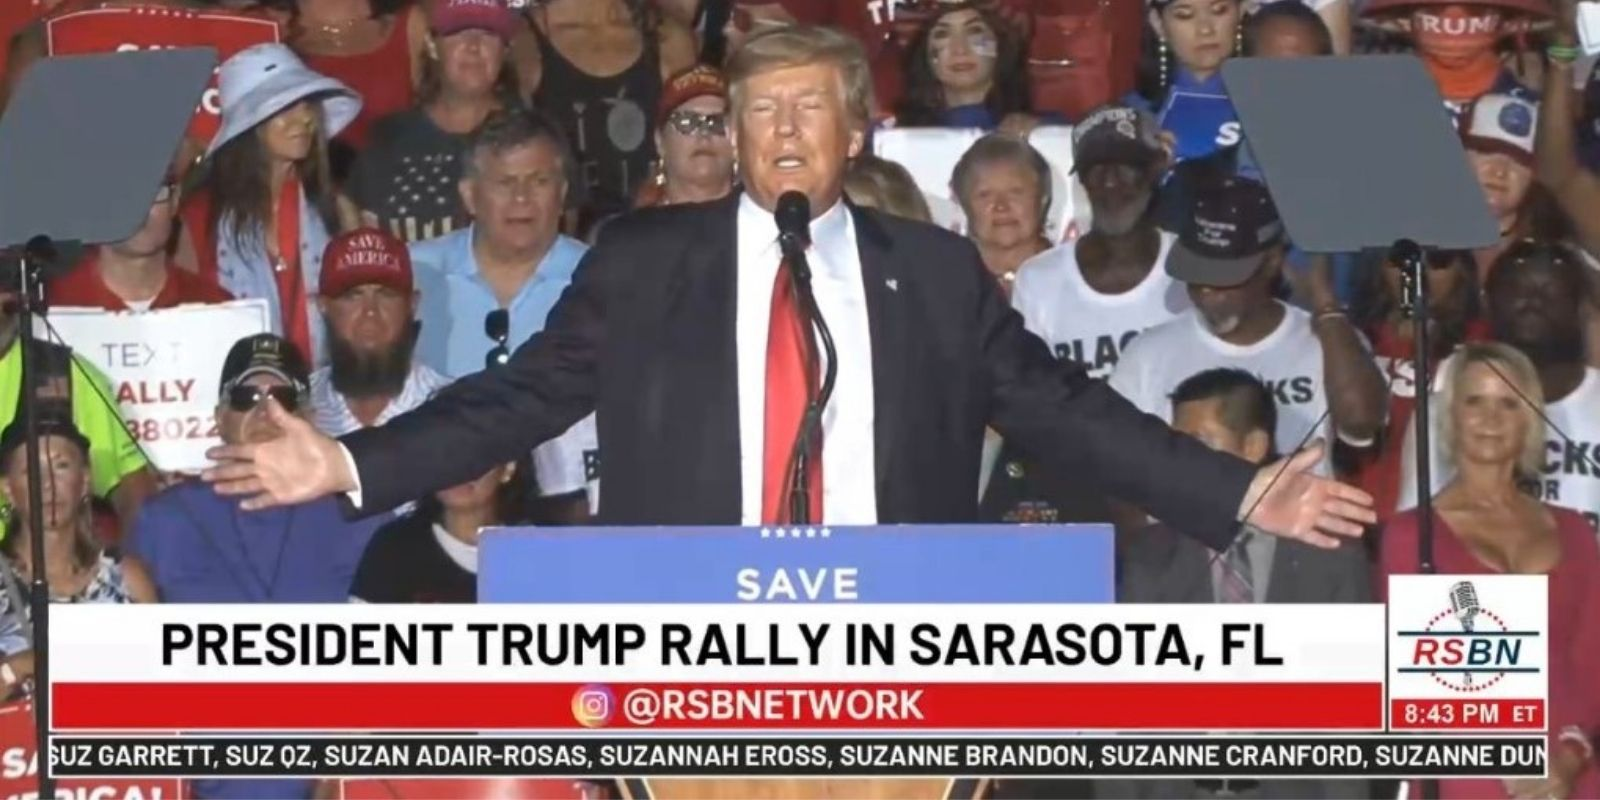 BREAKING: Trump speaks to massive crowd in Florida, slams media, witch hunts, critical race theory